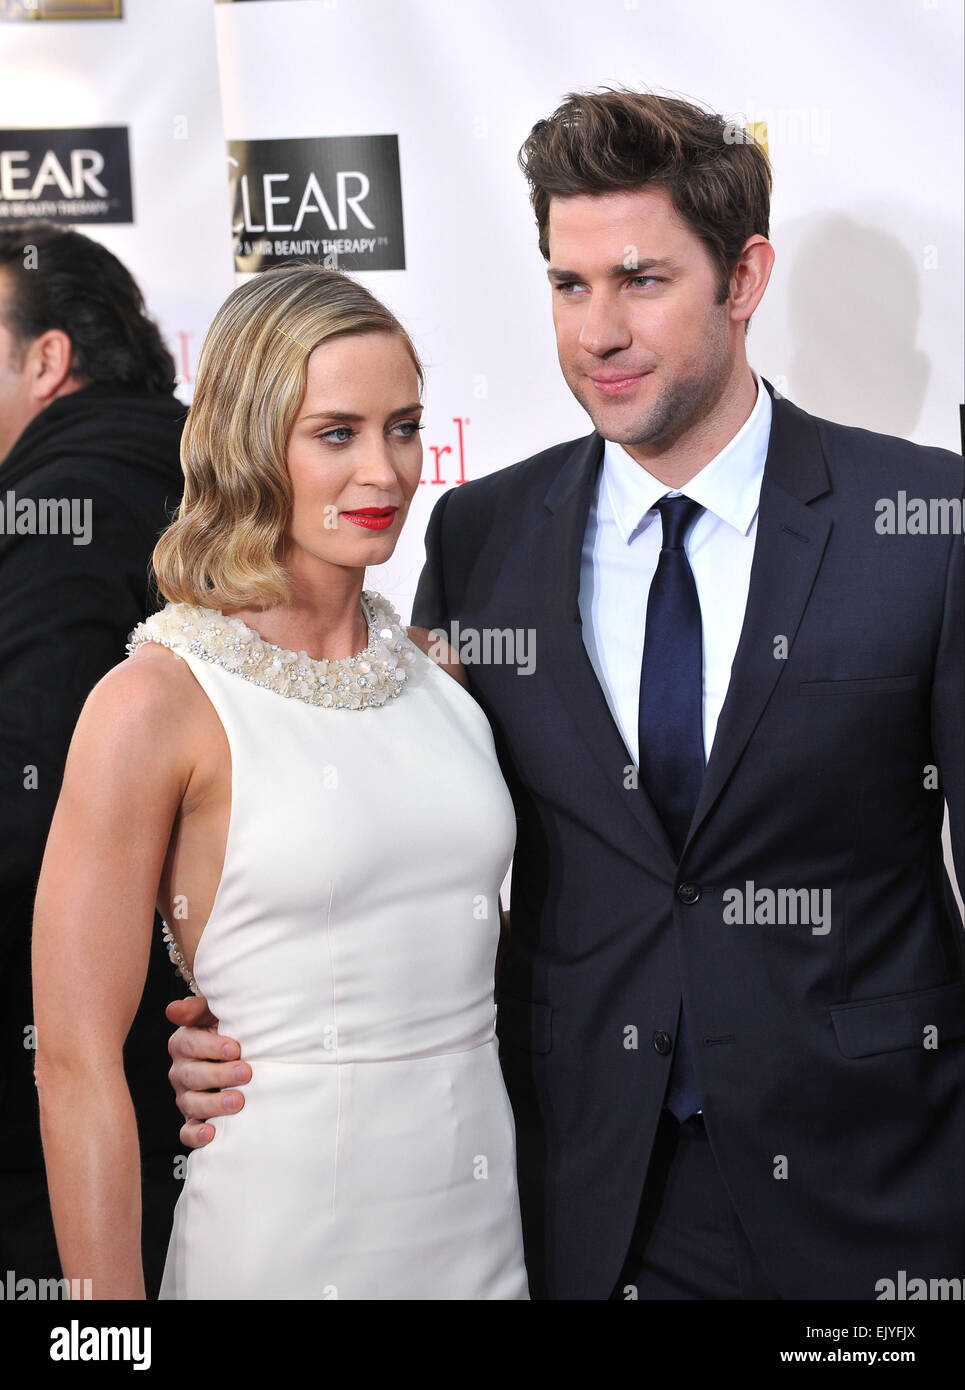 SANTA MONICA, CA - JANUARY 10, 2013: Emily Blunt & husband